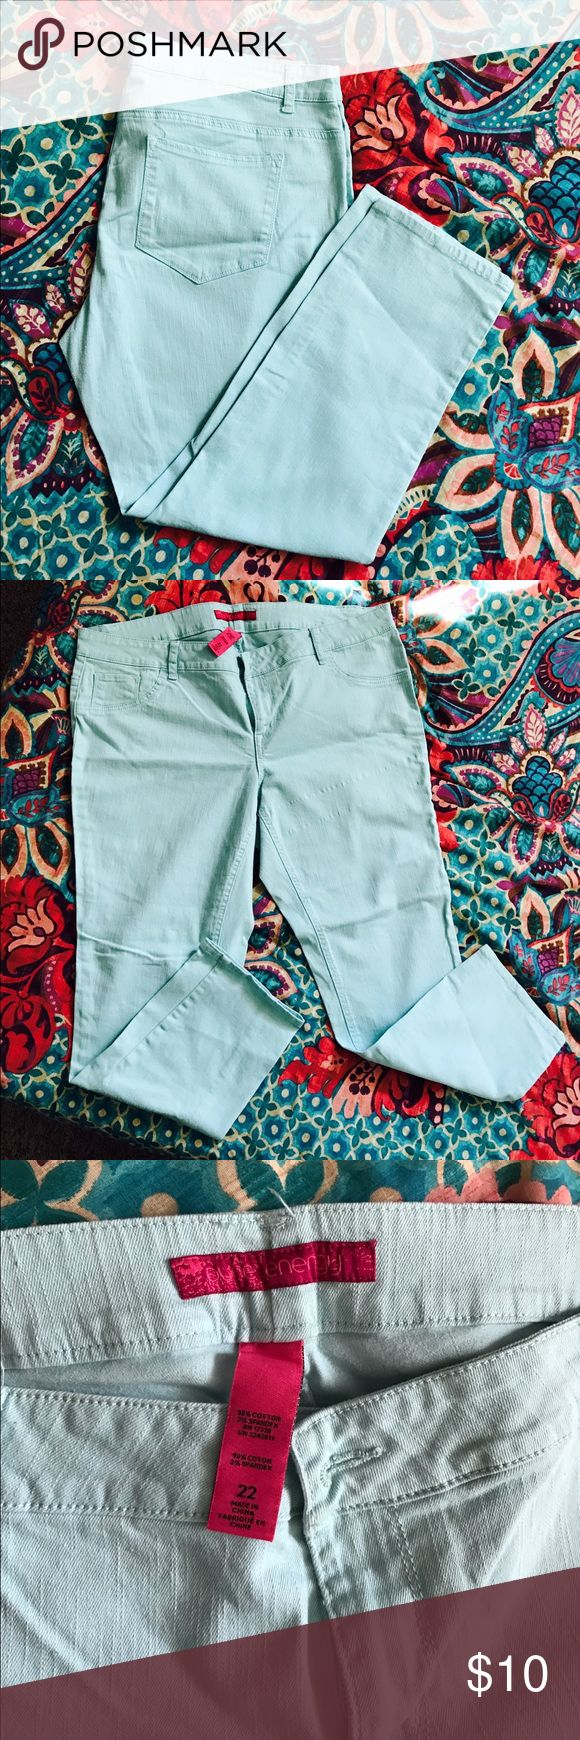 Mint Green Pants cute mint green pants ready for spring, summer or all year round if you are a spunky gal 😉 no rips, no stains, it only have back pockets. 🗽 Pure Energy Jeans